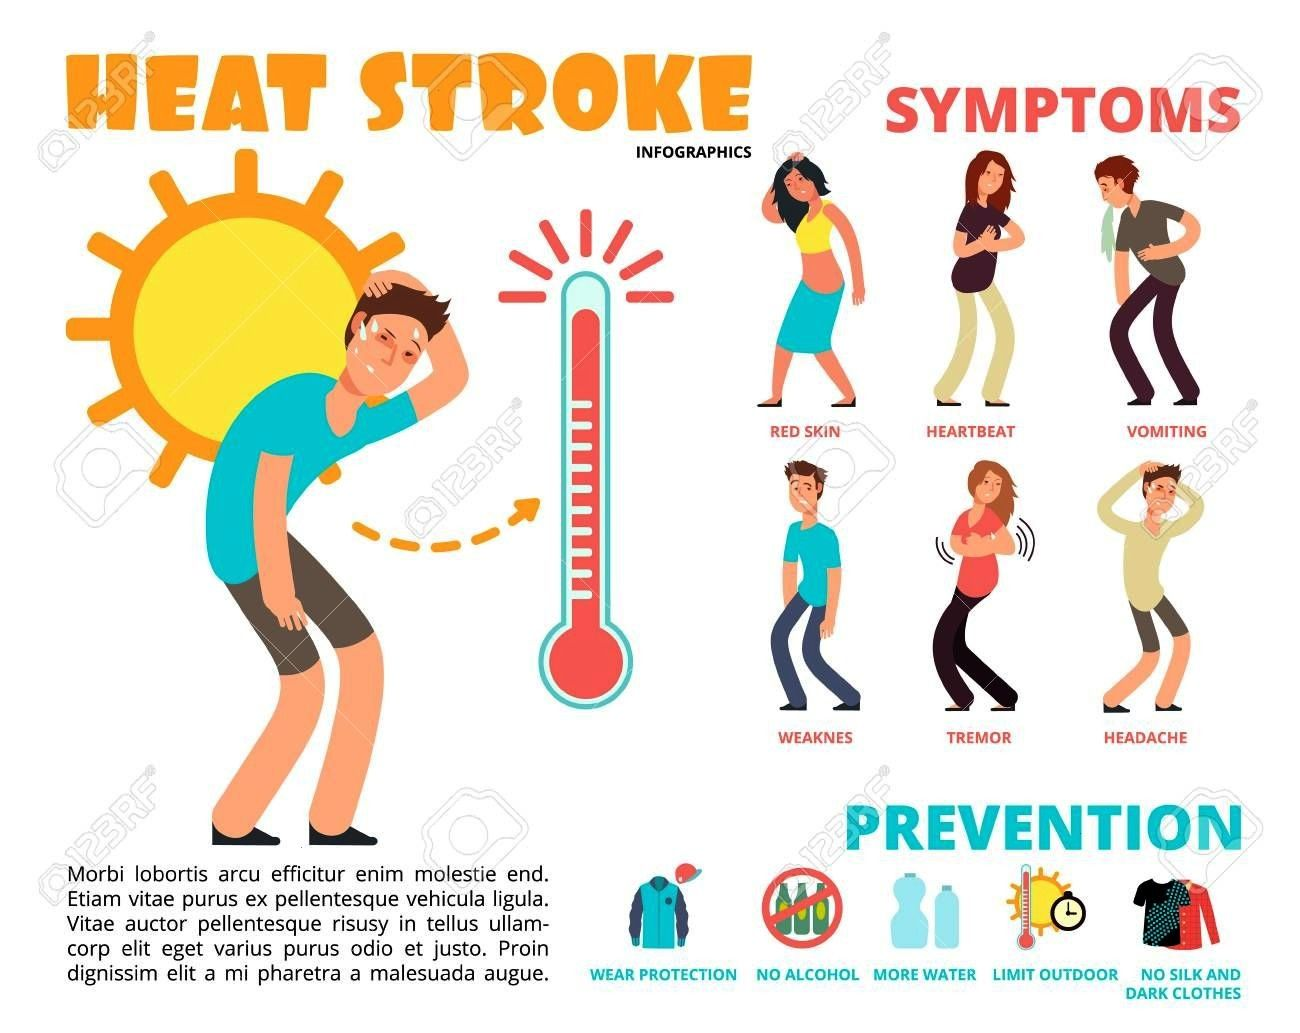 stroke risk symptom and prevention template design Heat stroke risk symptom and prevention template design  Best Wallpapers Websites For Android iphonewallpapers Colourfu...